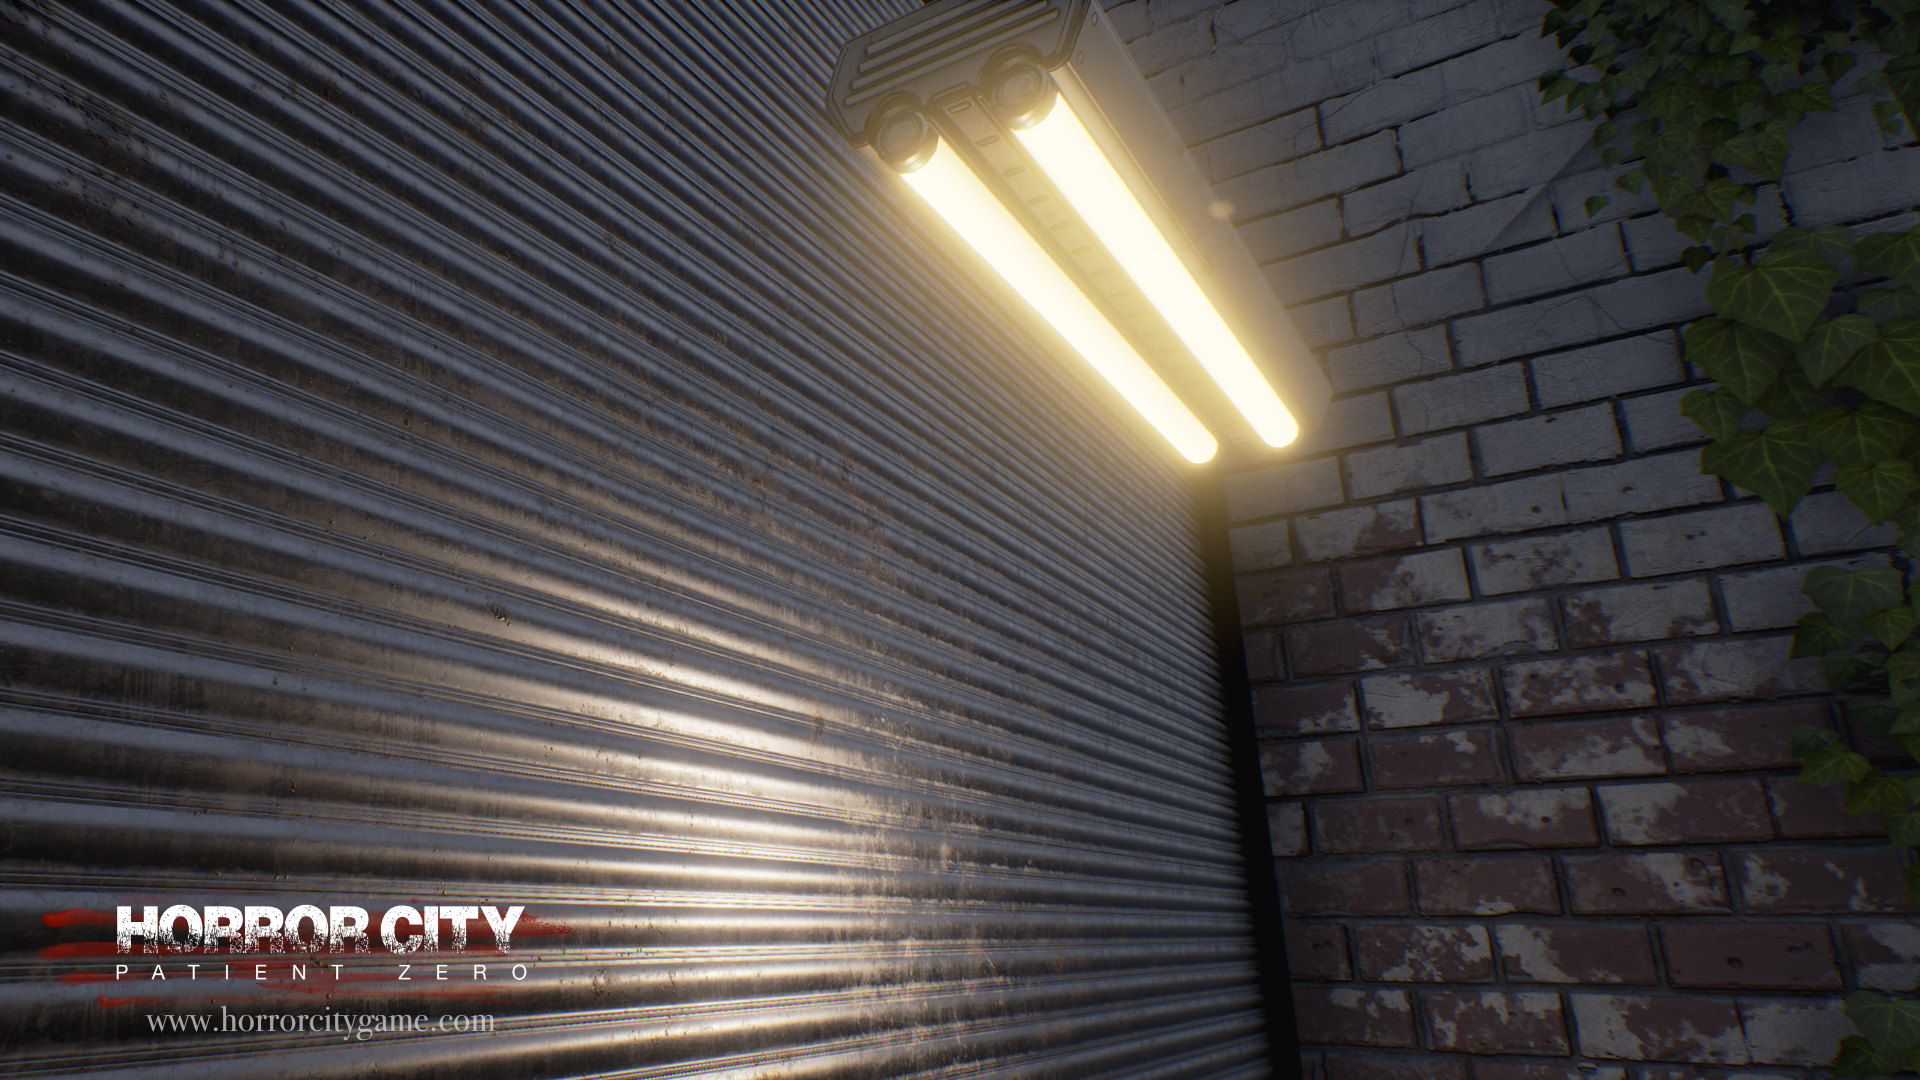 Store shutter textures done with Substance Designer